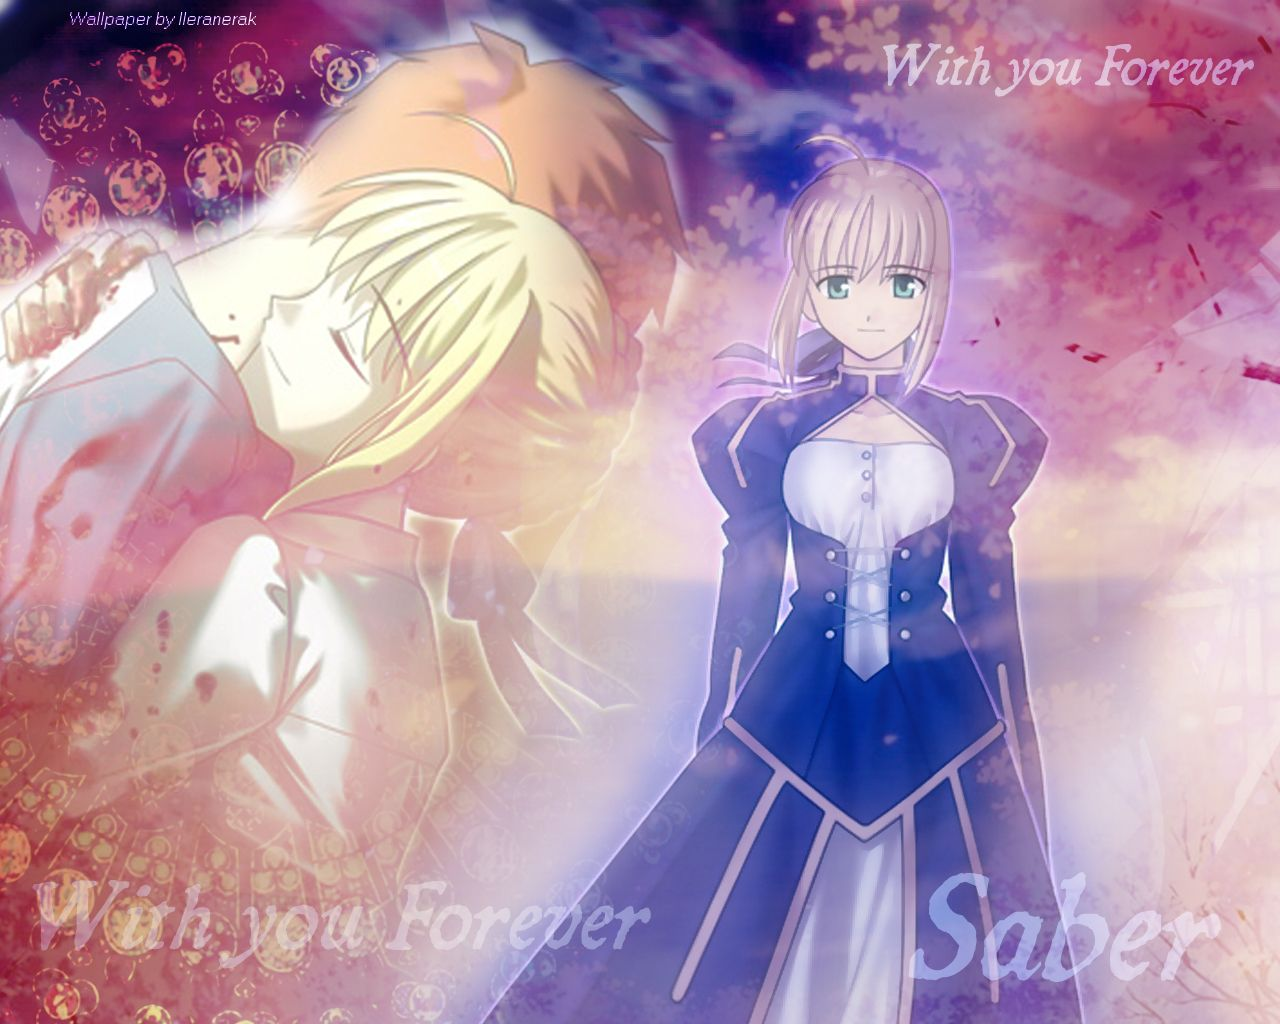 Minitokyo_Fate-Stay_Night_Wallpapers_283627.jpg